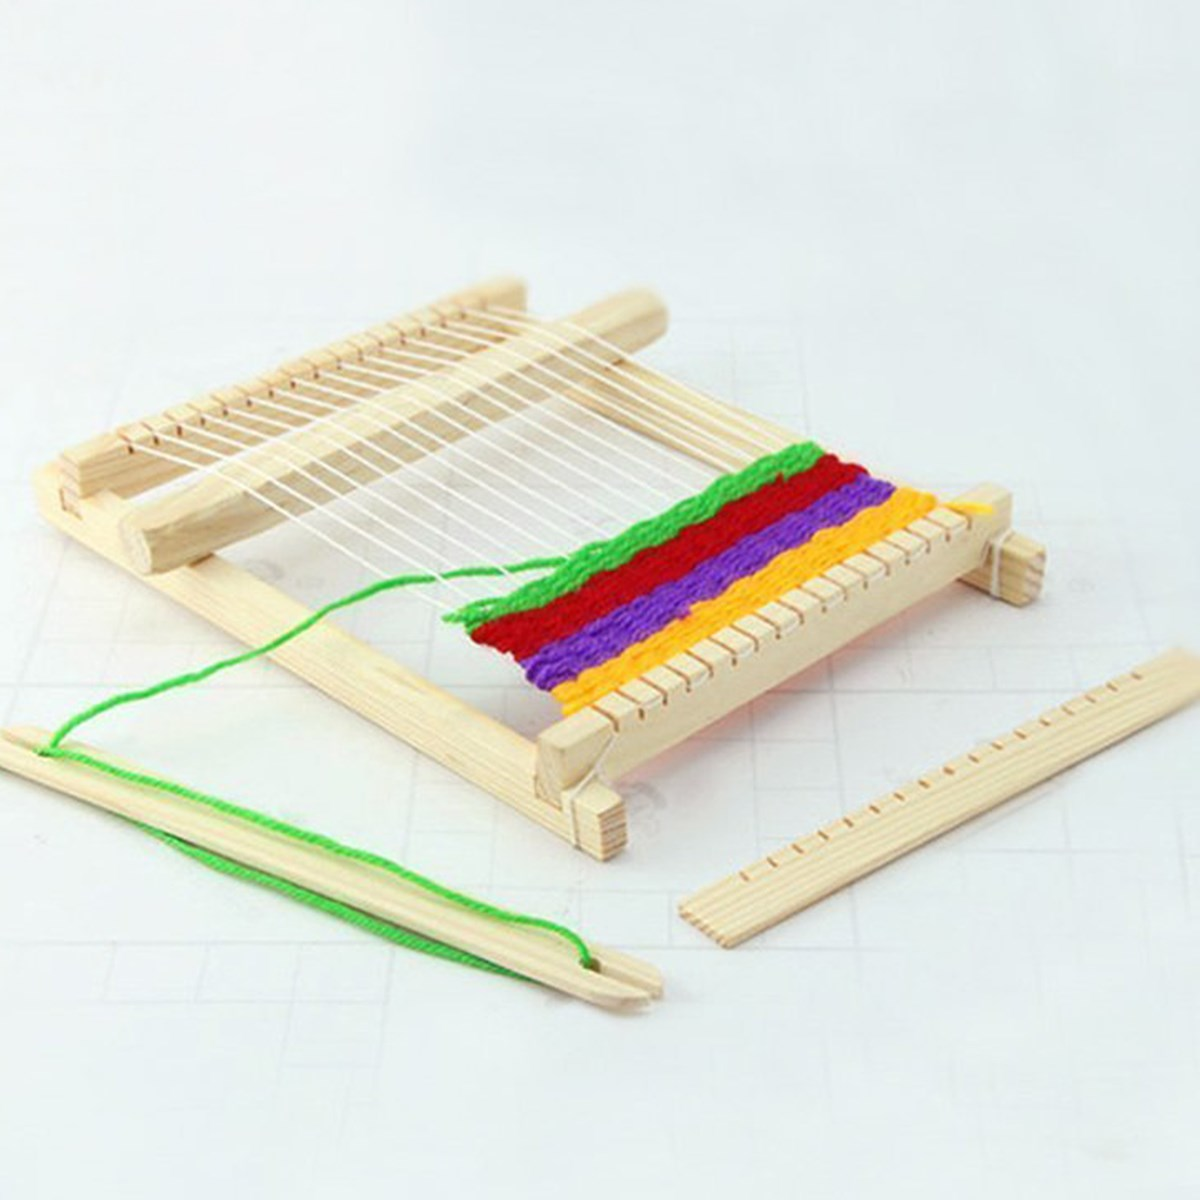 Craft toys for kids - New Traditional Wooden Weaving Toy Loom With Accessories Childrens Craft Box Educational Toys Gift For Children Kids